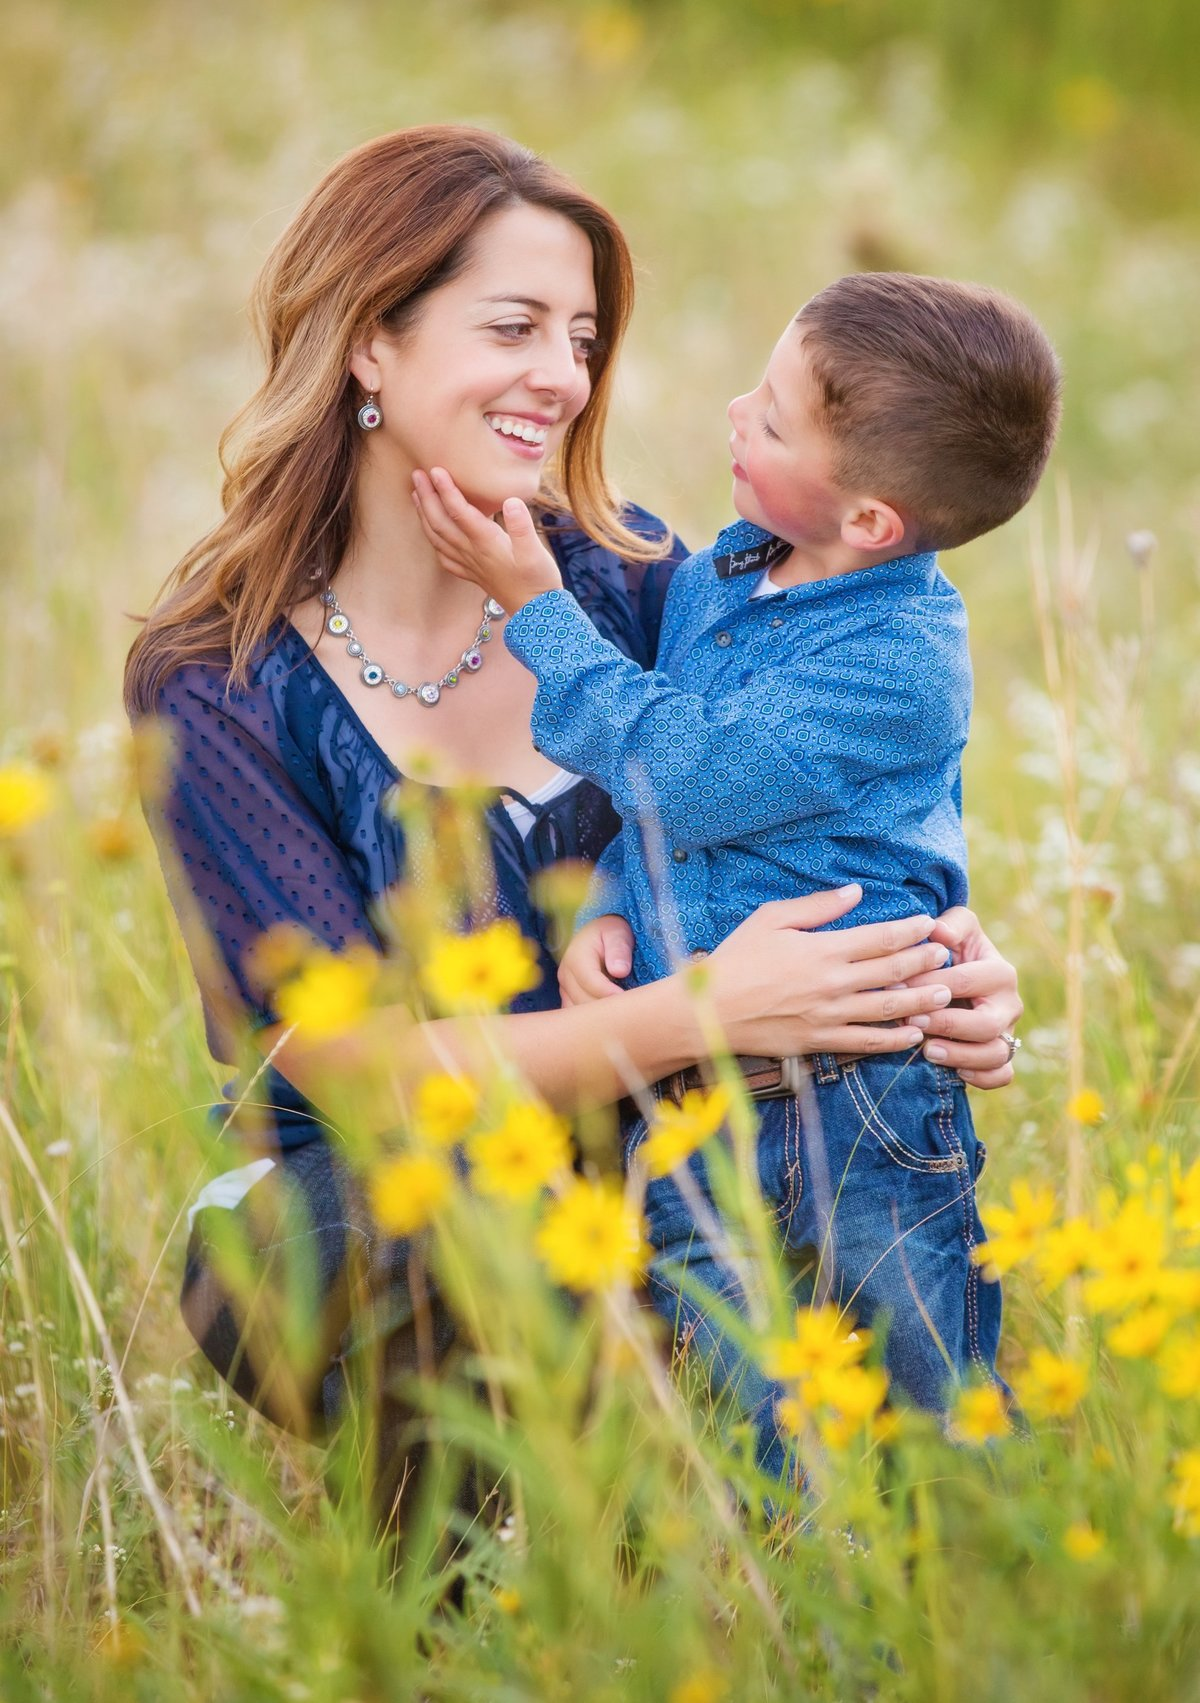 A mother embracing  her small son in a Laramie field with yellow flowers